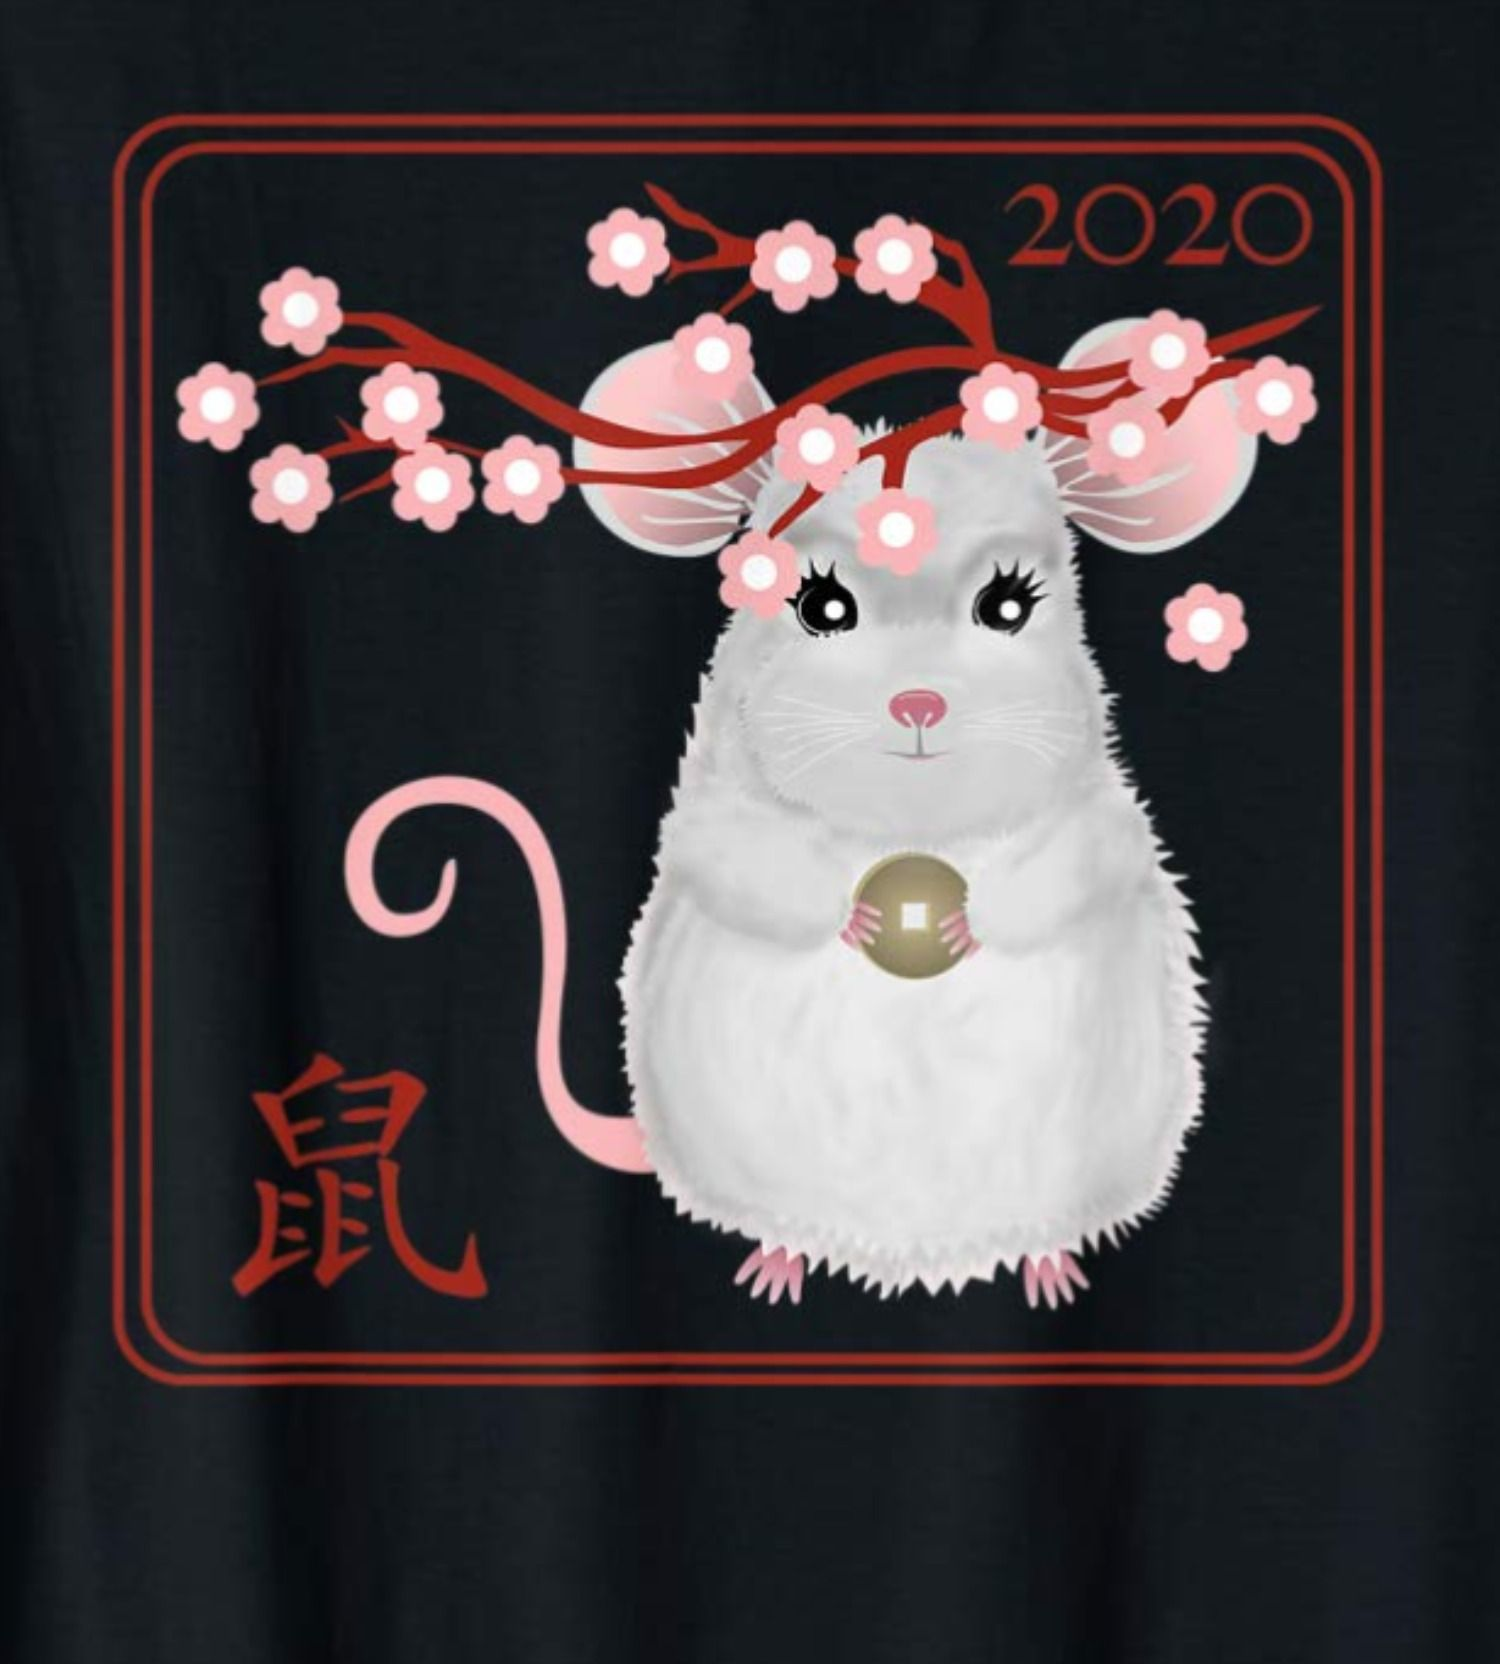 year cycle of animals in the Chinese zodiac. There are 5